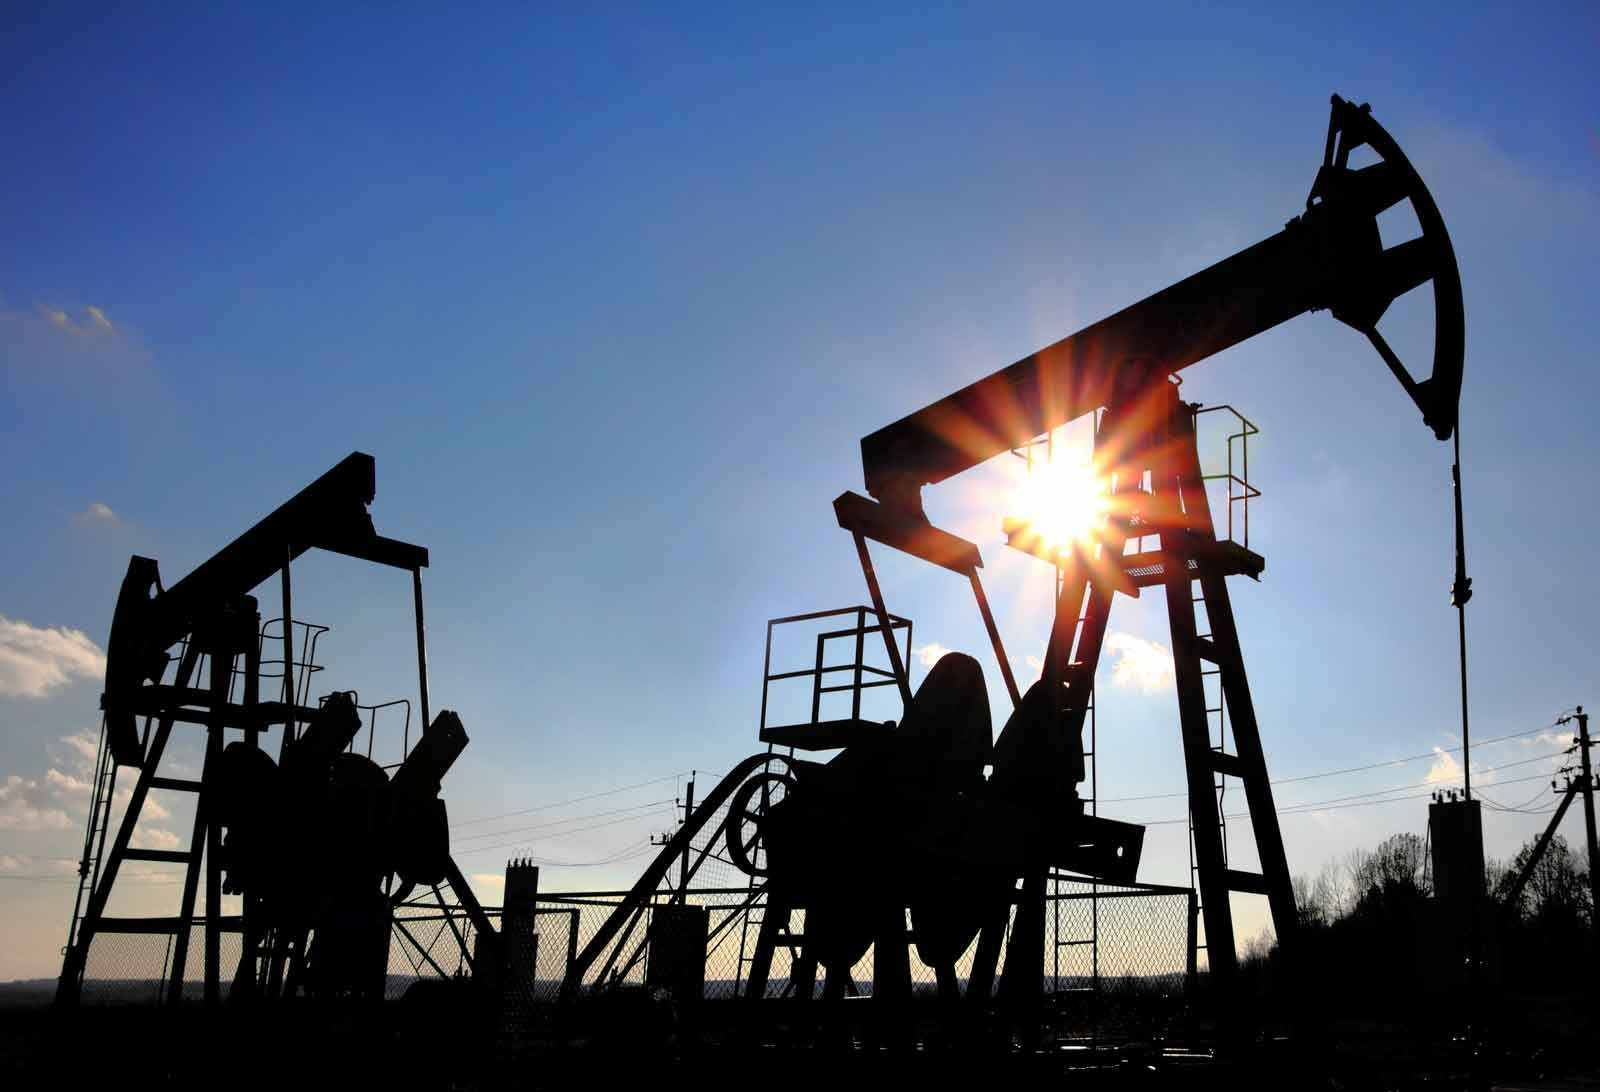 Crude oil expected to exceed global demand in 2018